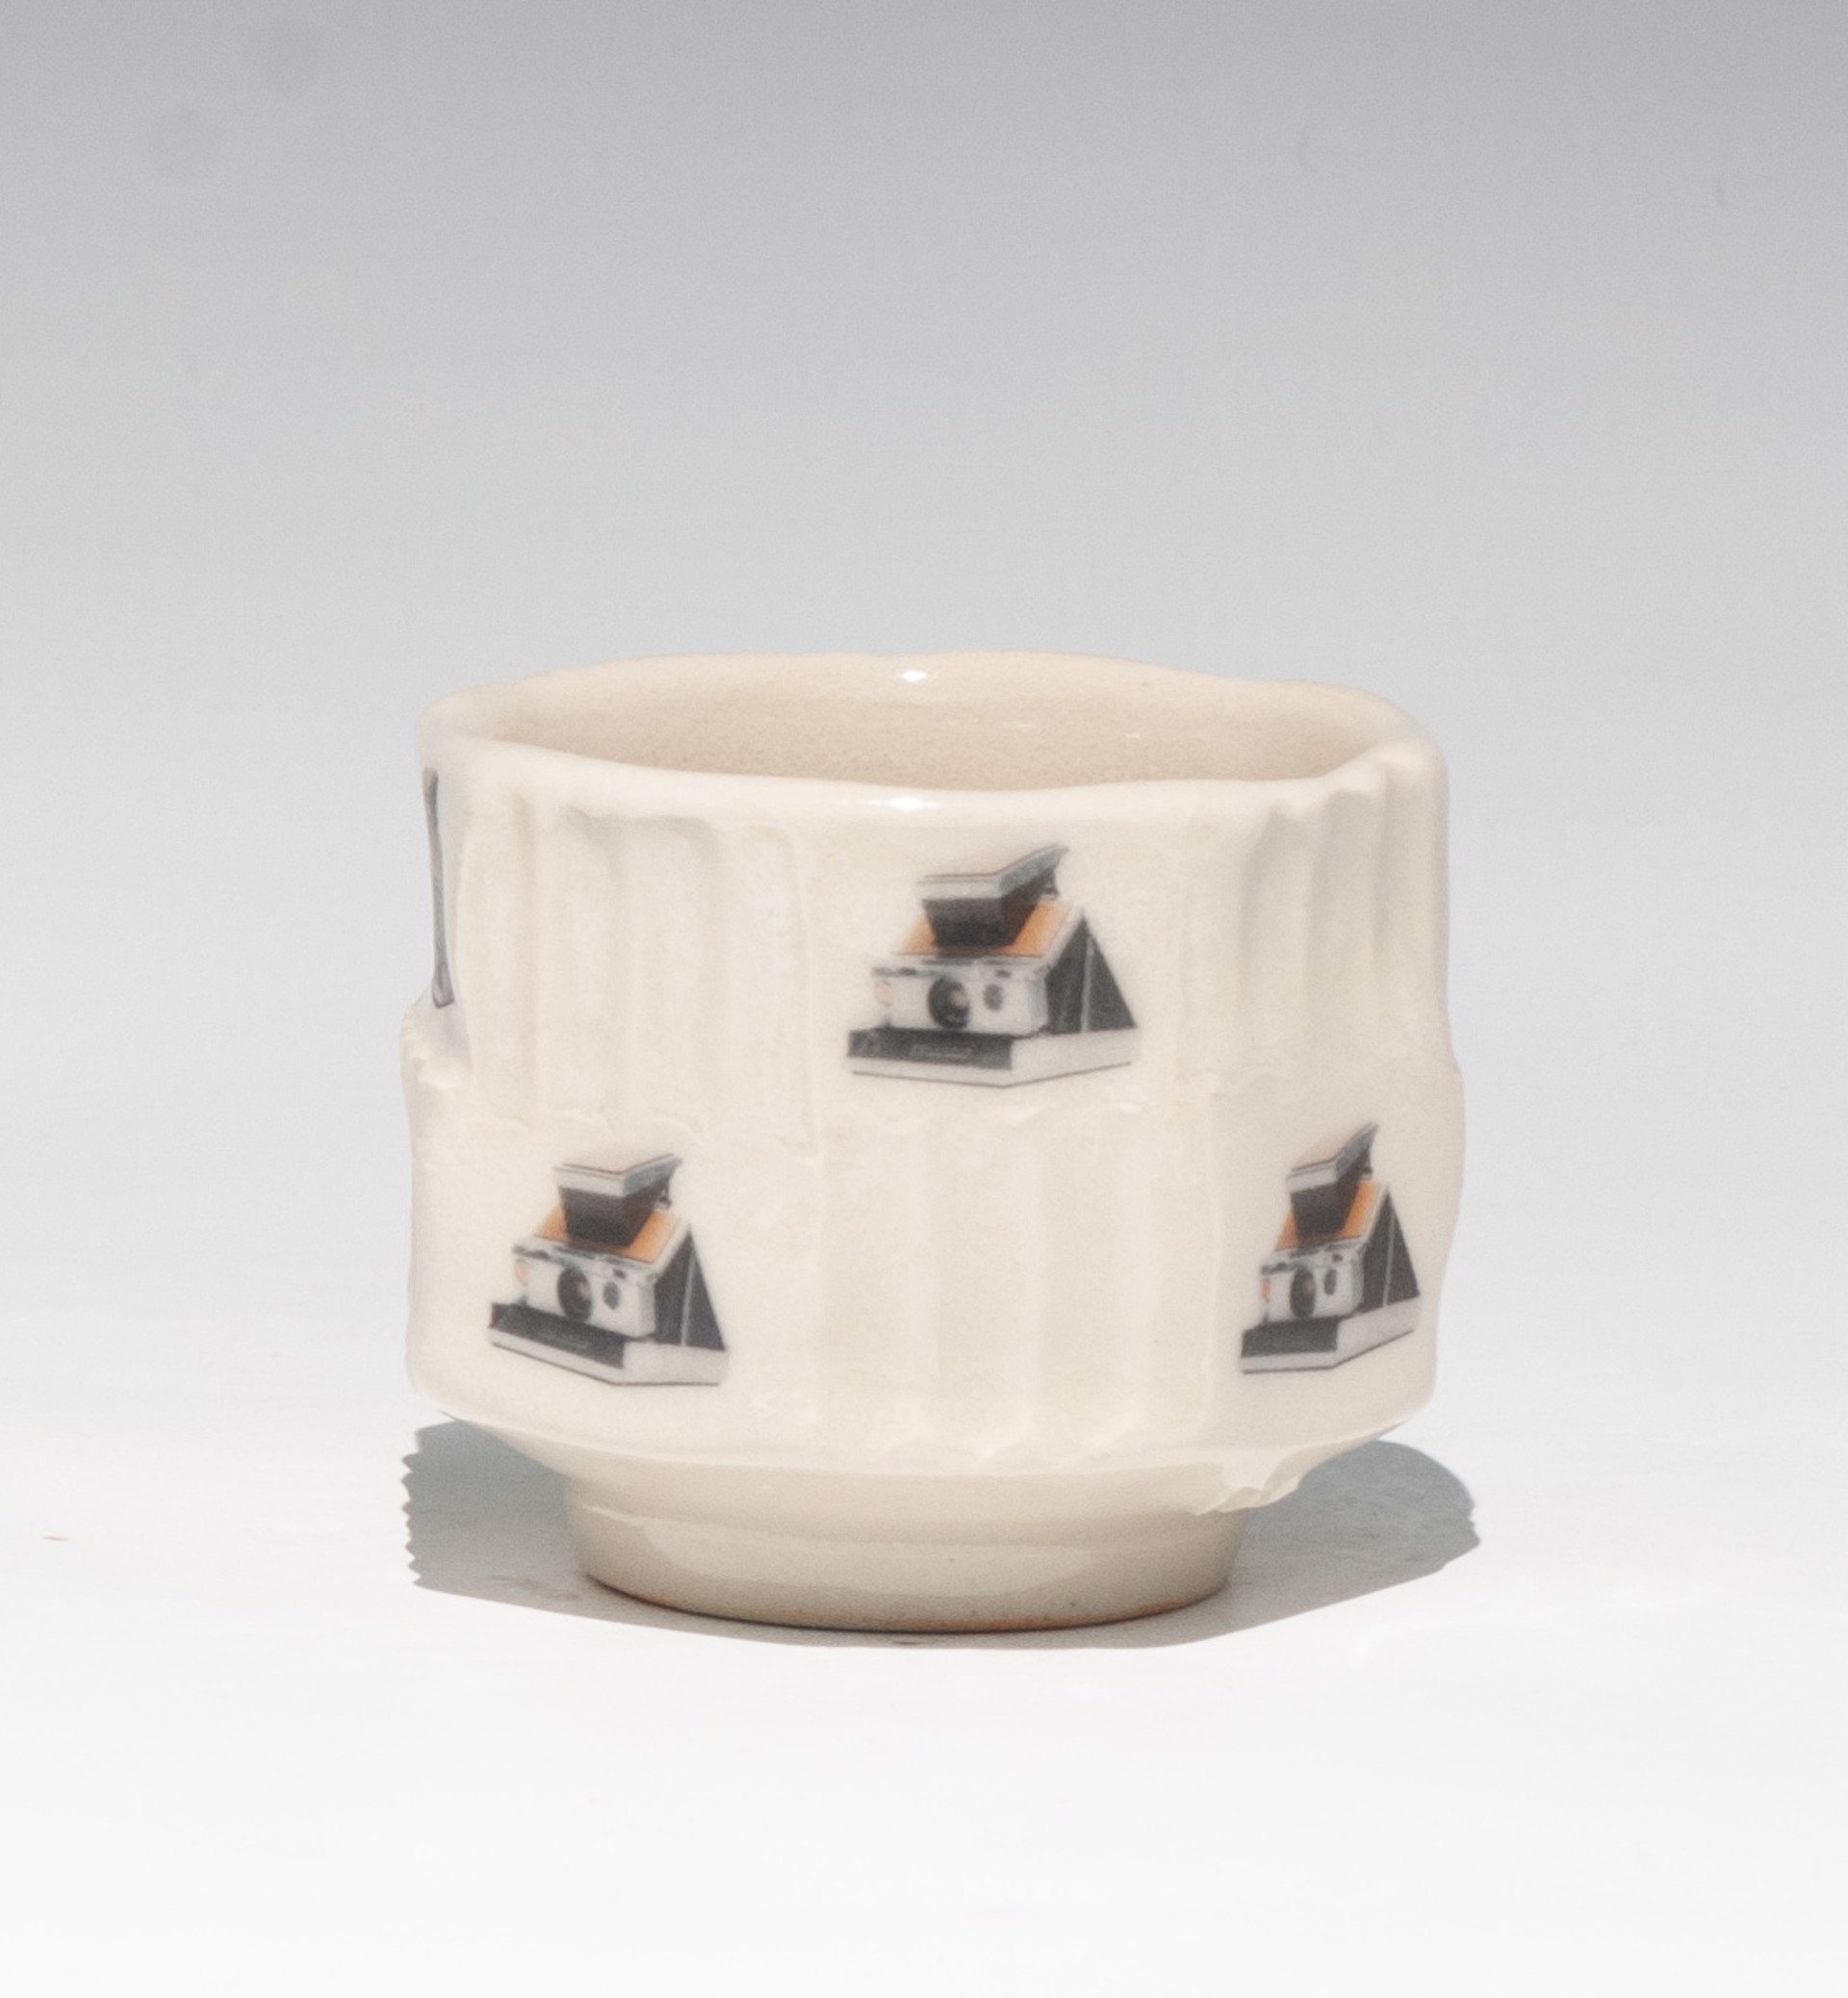 Polaroid Sake Cup by Daniel Anderson